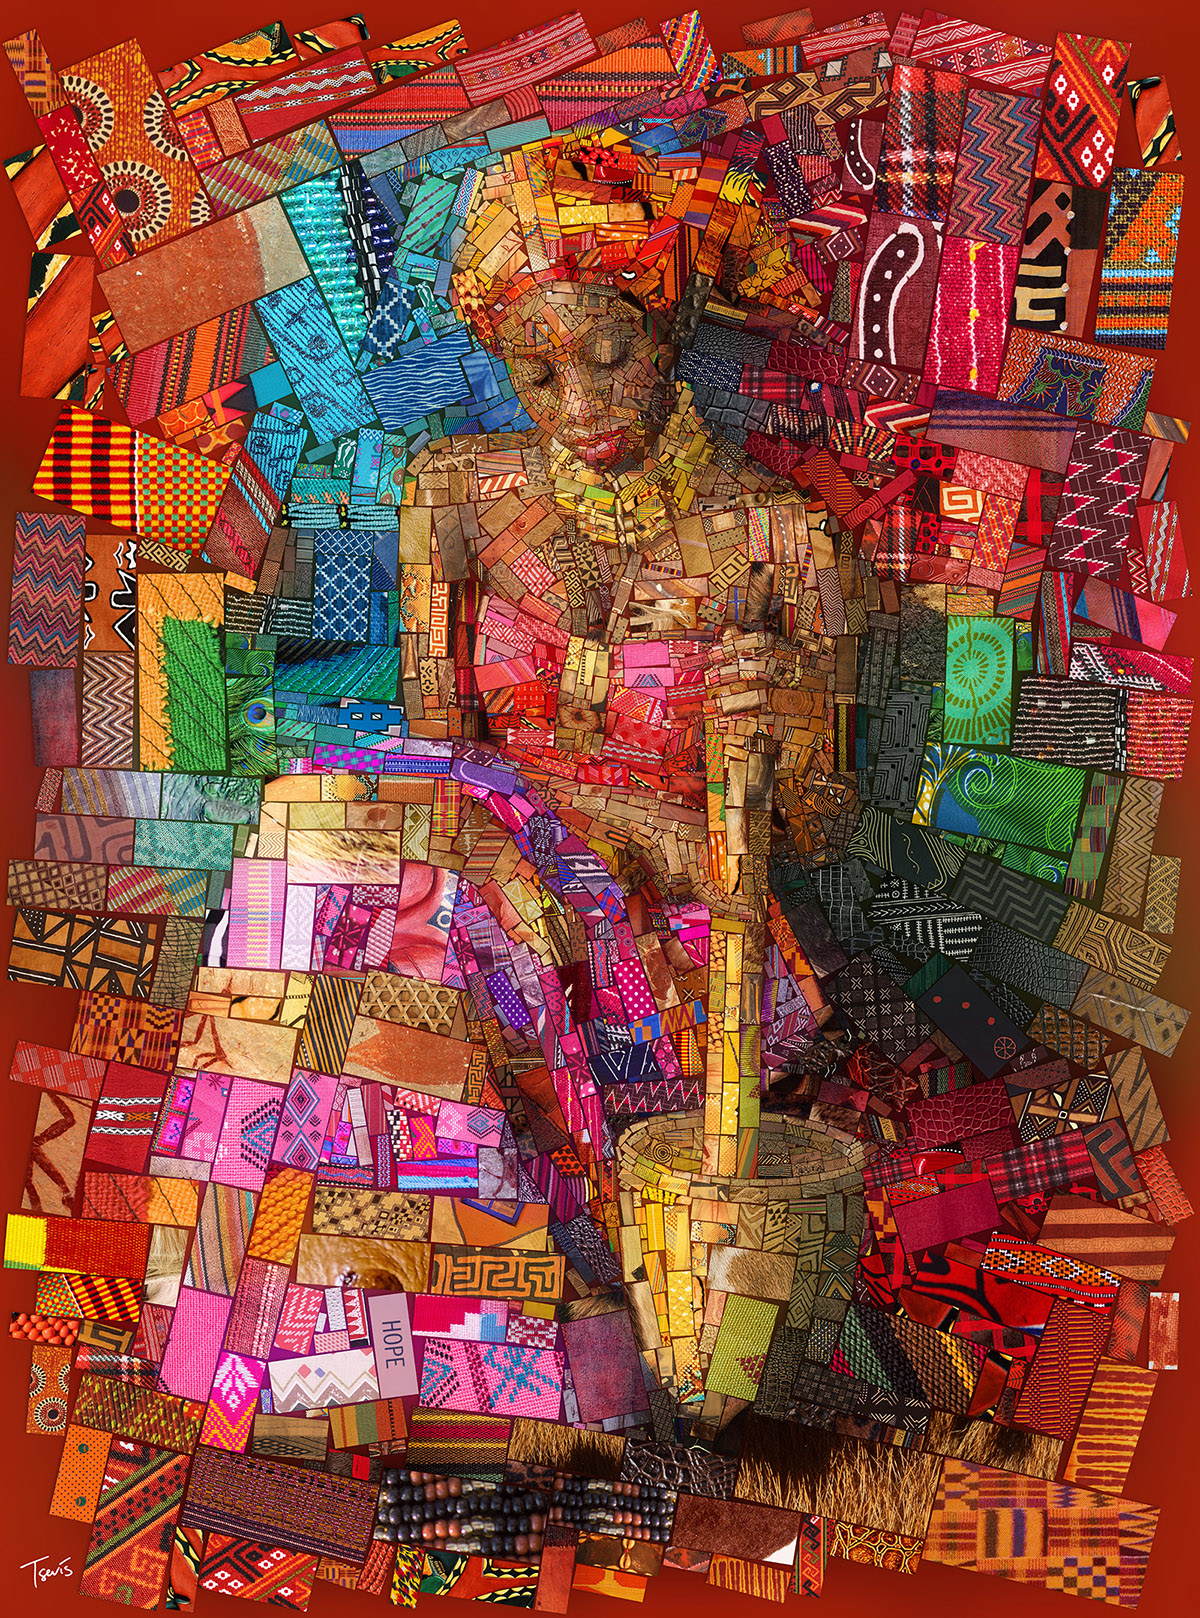 Incredible Mosaics inspired by the African bricks by Charis Tsevis ...